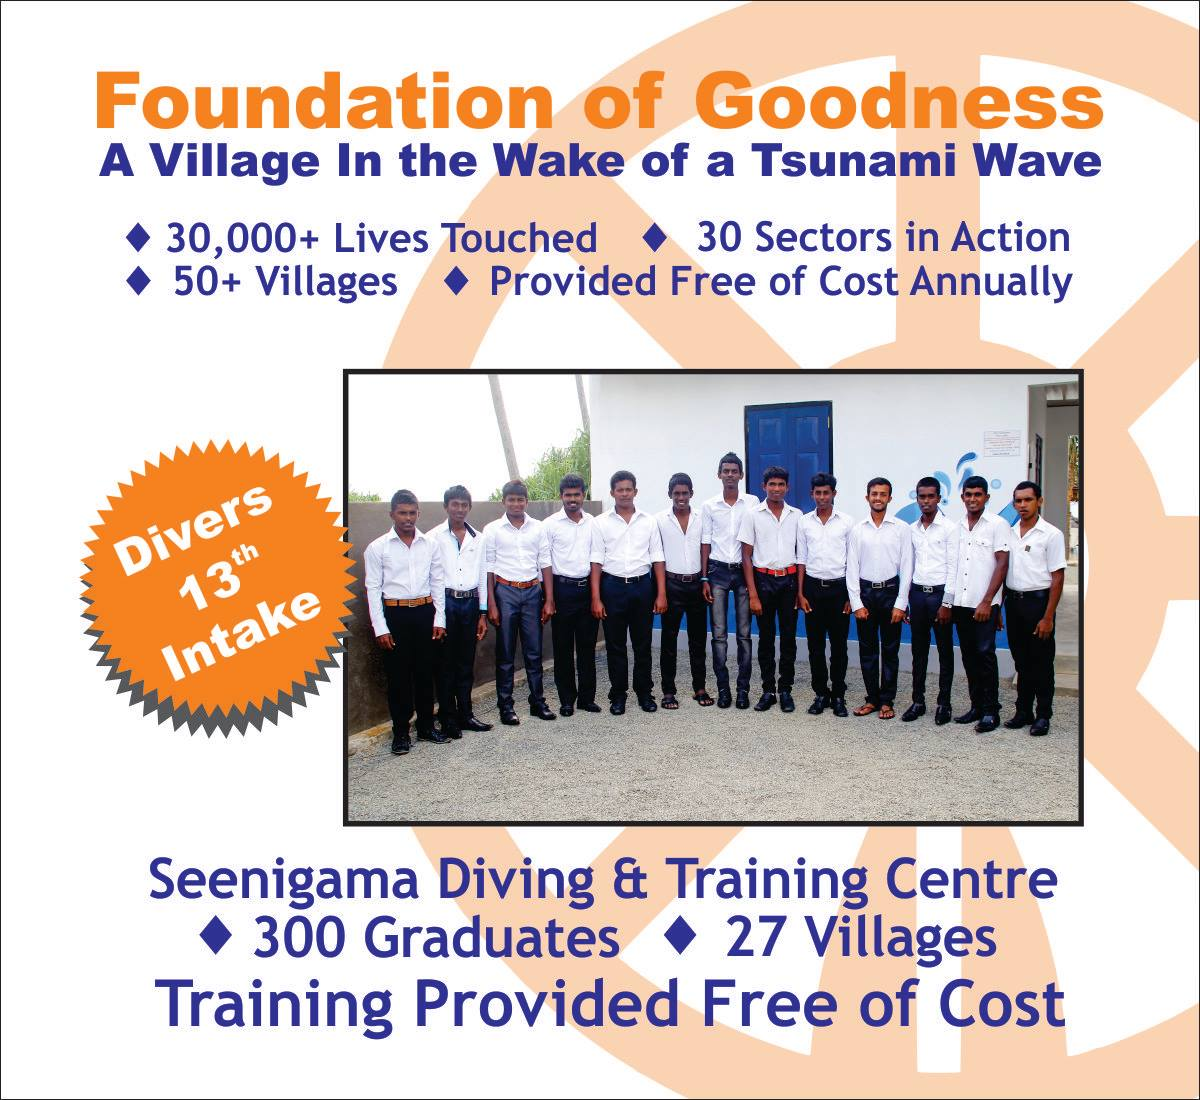 Seenigama Diving & Training Centre, funded by Dive Seenigama, Dive Lanka and Foundation of Goodness, trains two batches each year in Commercial Diving & Swimming skills free of cost to rural village young people.